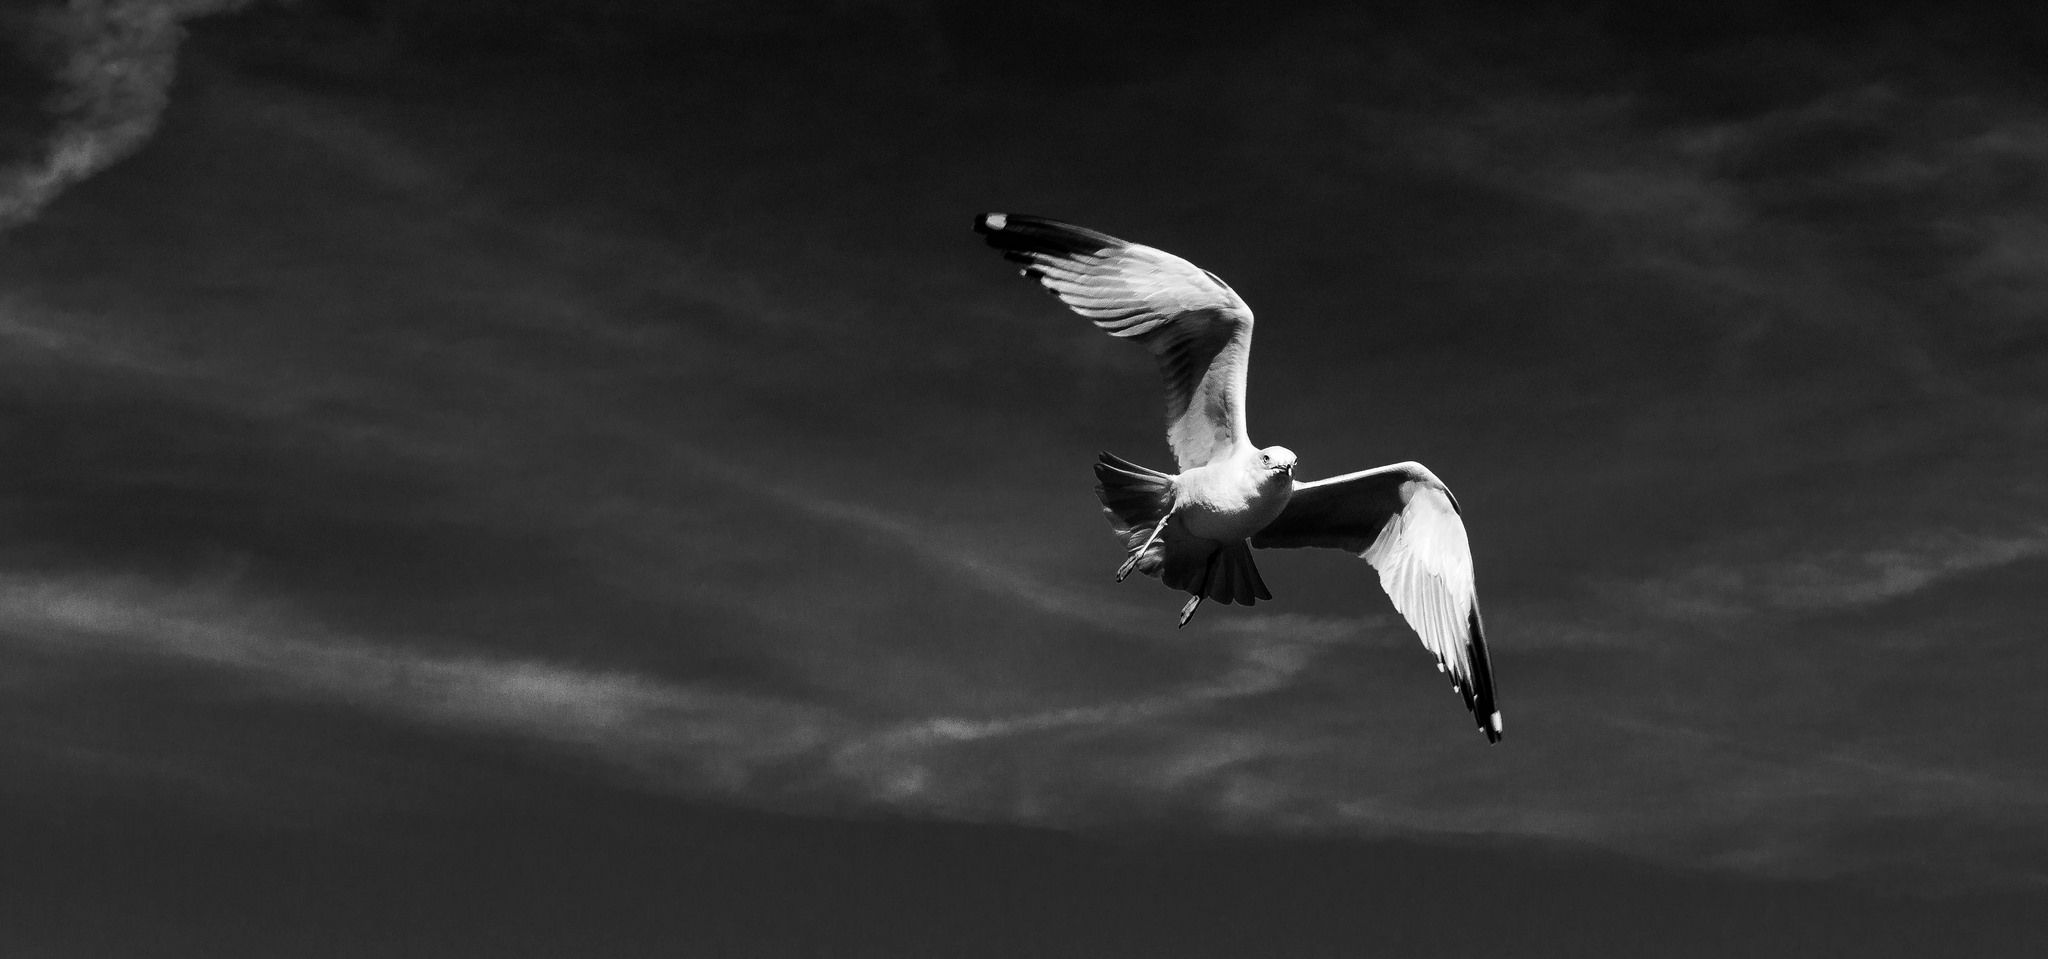 https://flic.kr/p/ngVrrT | Seagulls1 | I came across some people feeding the seagulls by throwing bread in the air. I was so amazed at how the seagulls didn't seem to miss a beat as they caught the bread in mid air. When I looked at the pictures on my computer, I was even more amazed at the way they used their wings to maintain their position in the air.